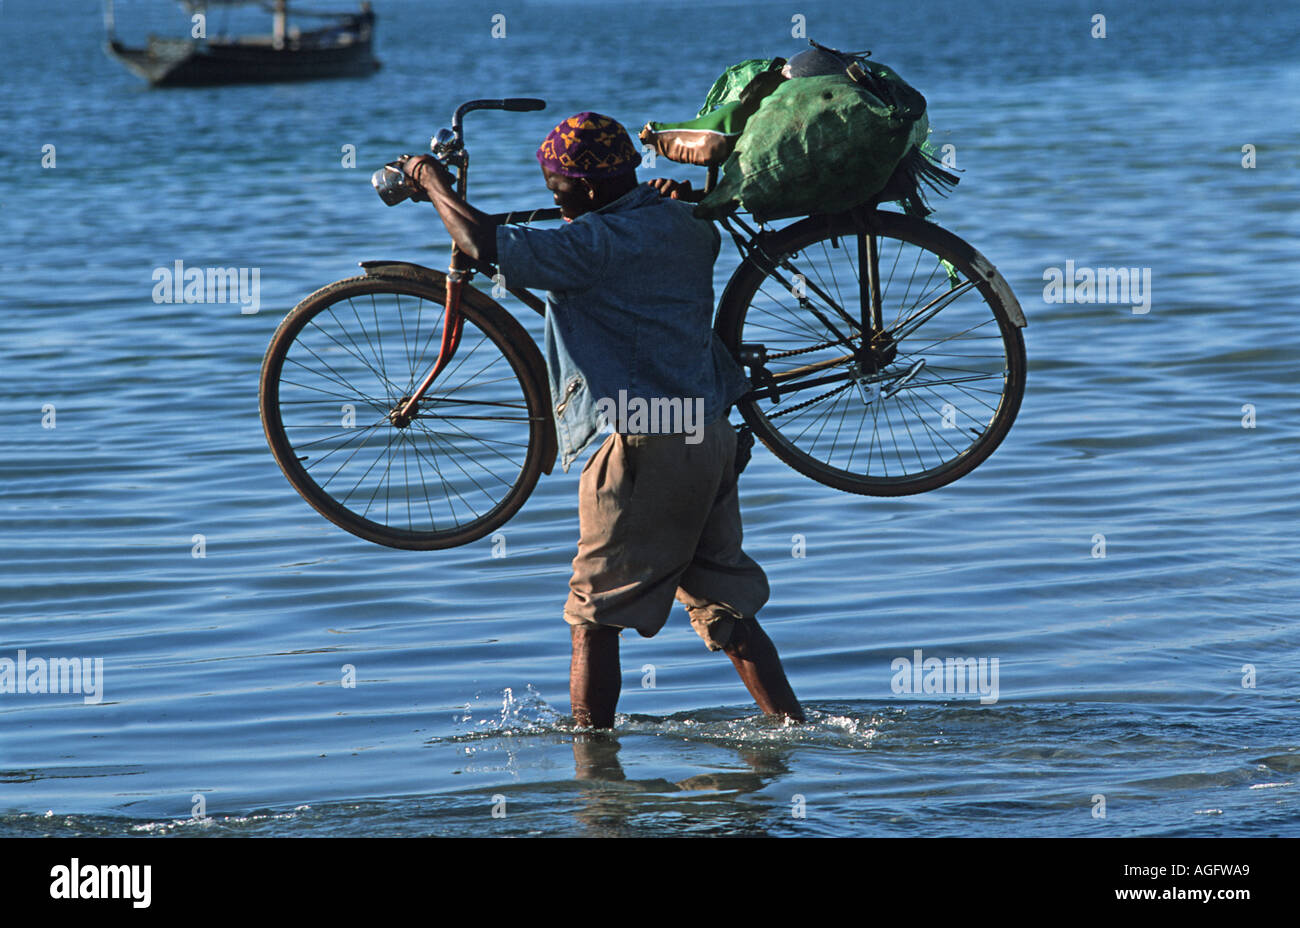 Tanzanian man carrying his bicycle to a boat to transport from Mafia to Chole Island Mafia lies S of Zanzibar East Africa - Stock Image